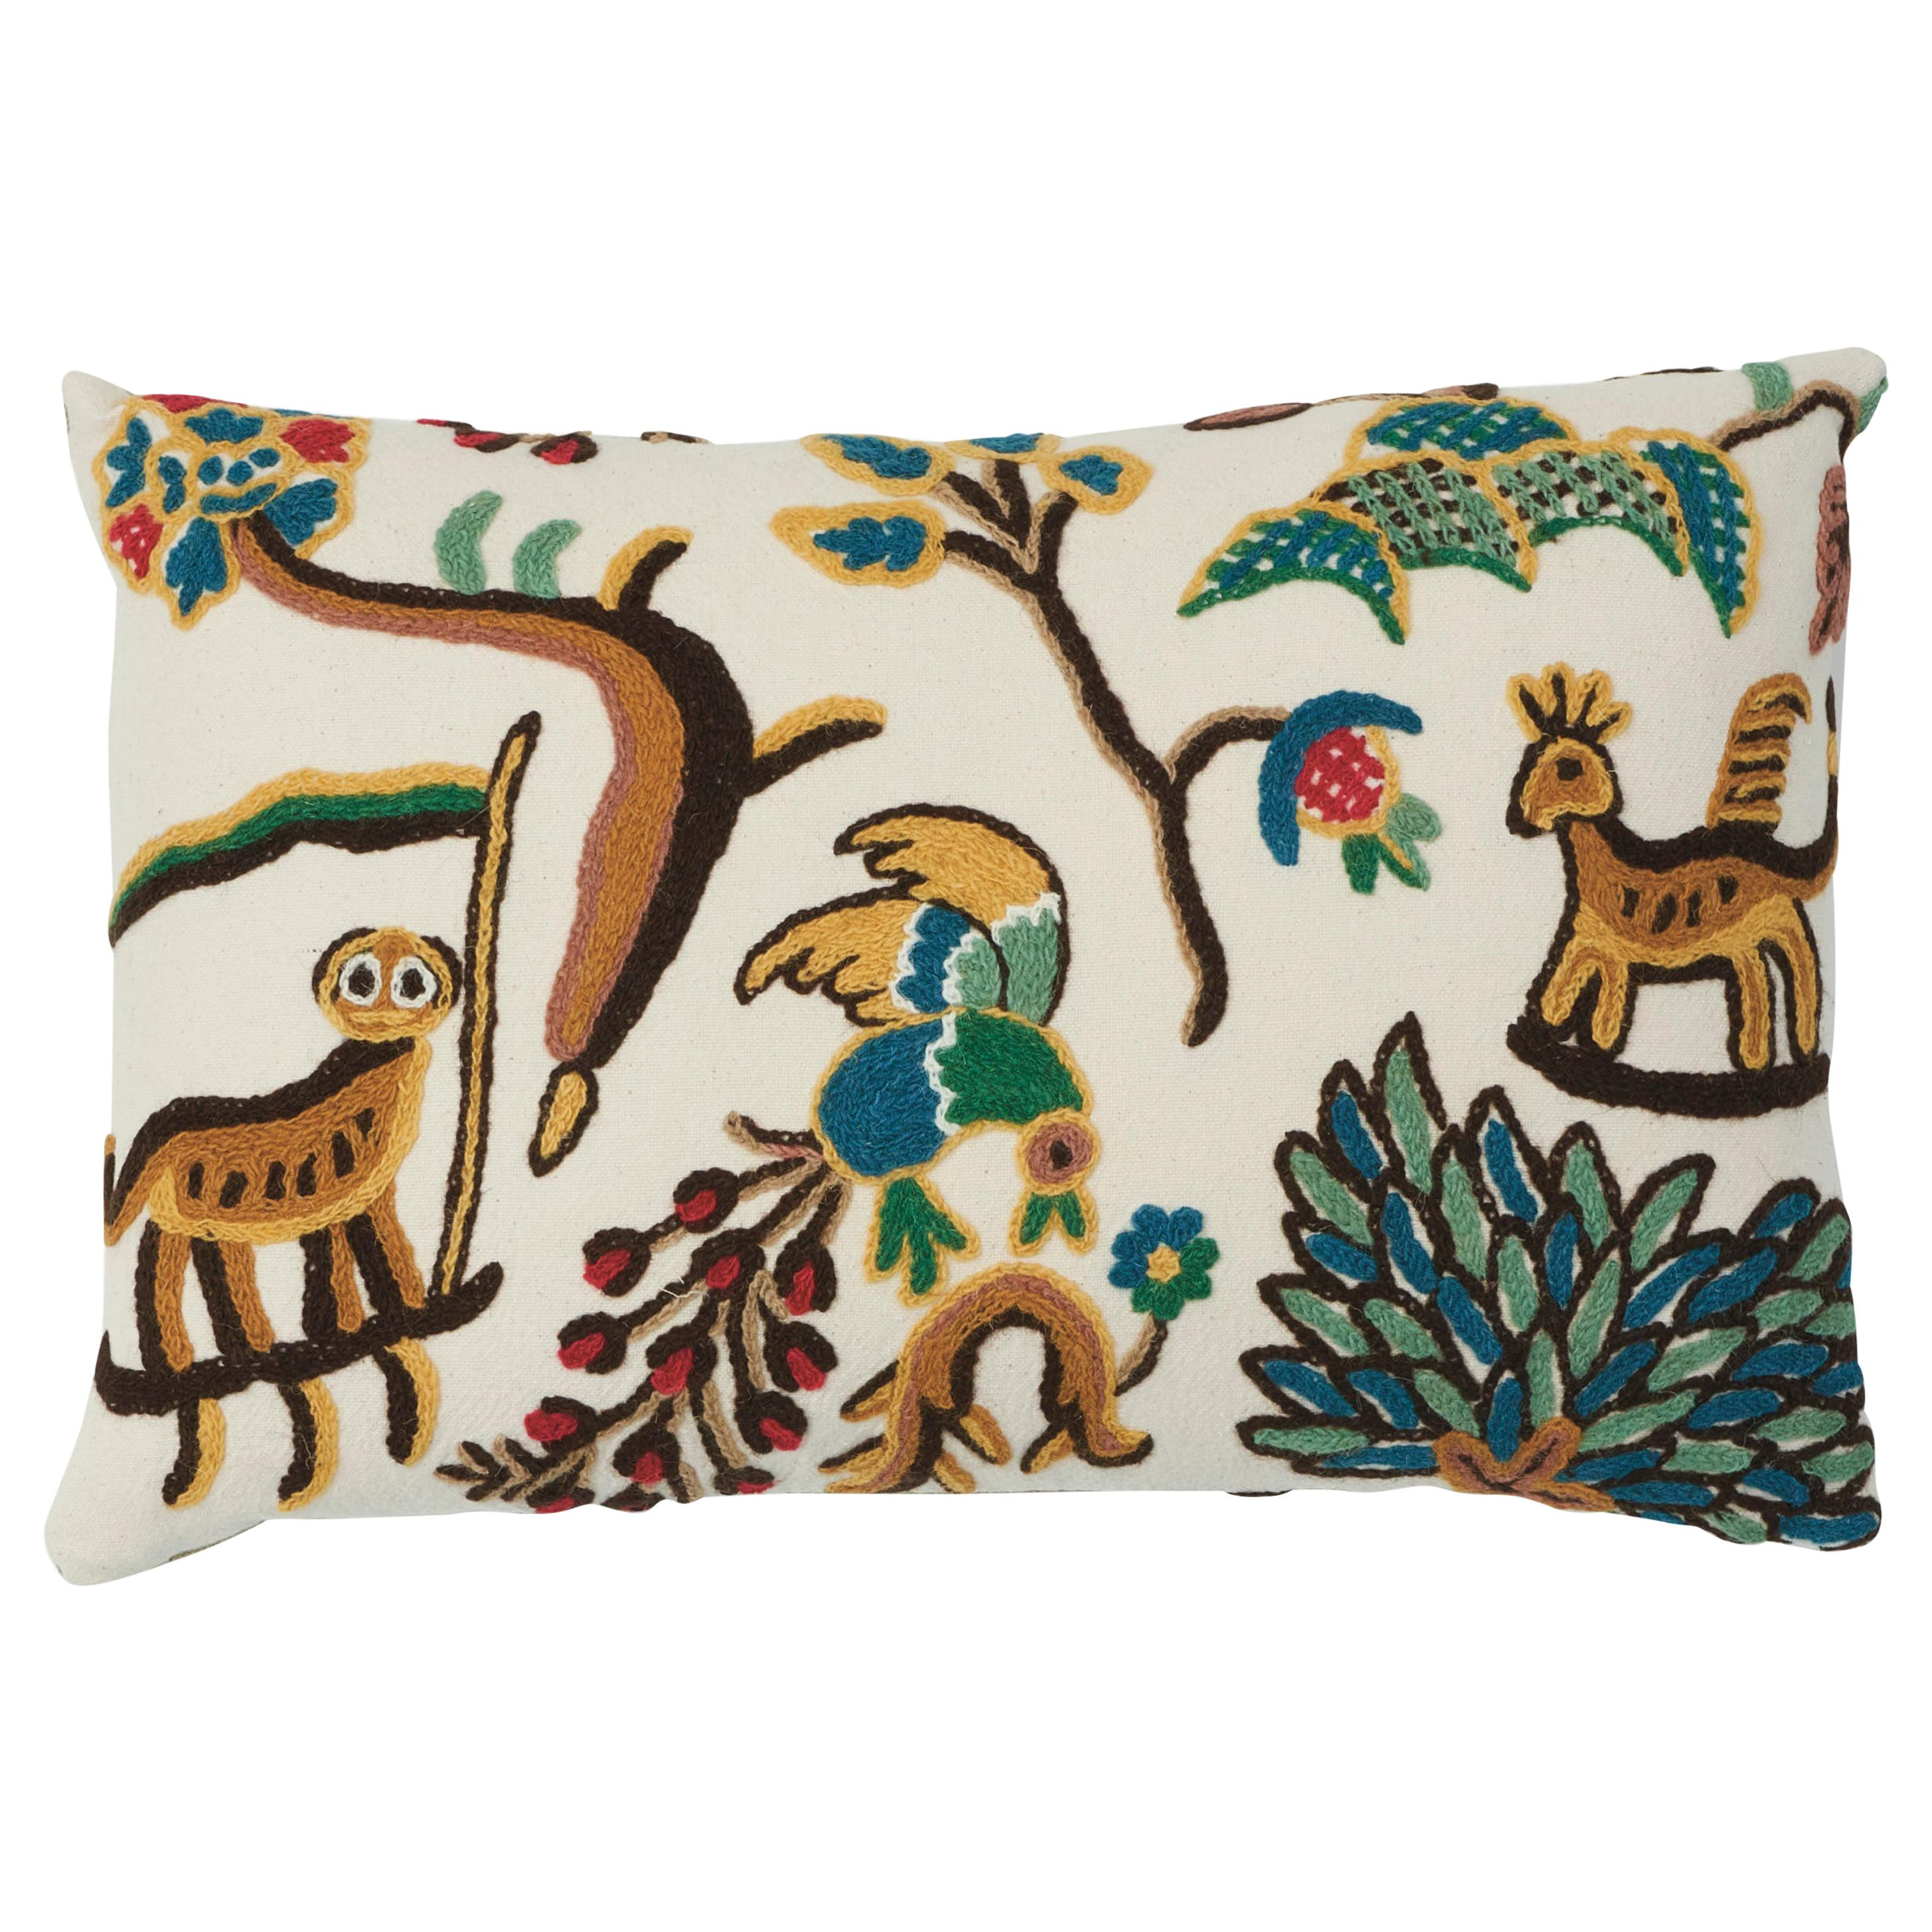 French Whimsical Zebra Pillows a Pair